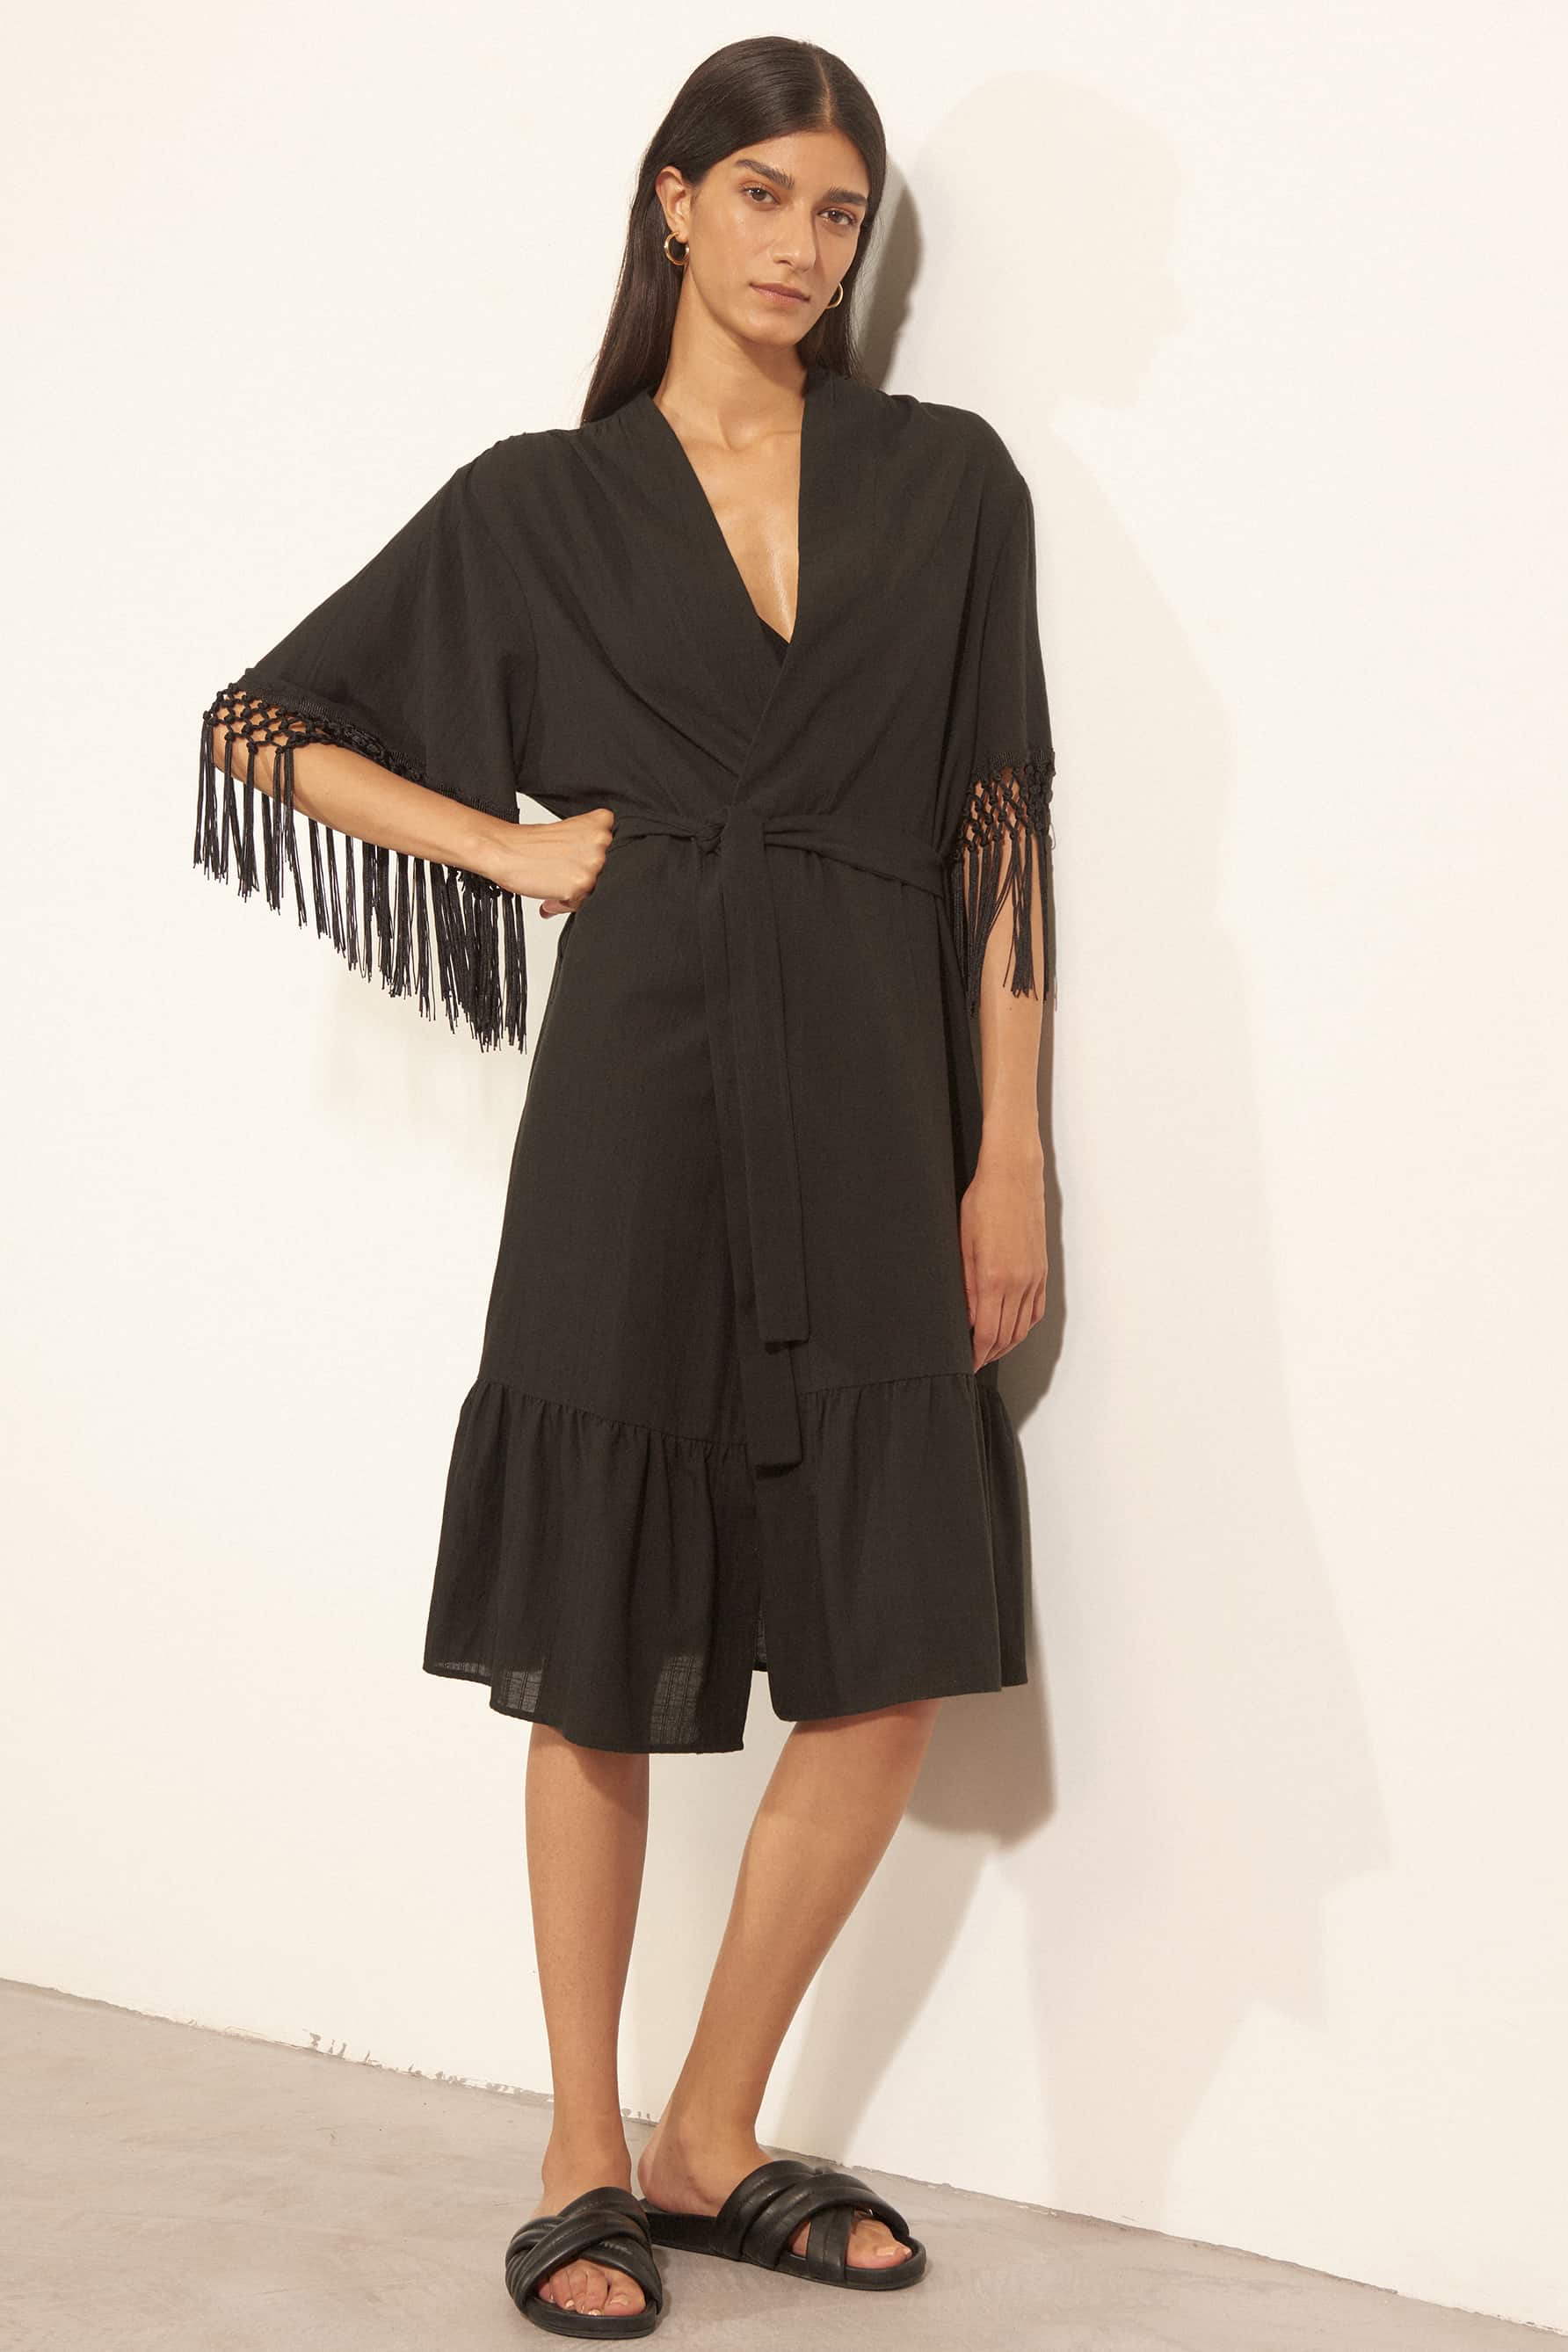 Else Cabo Robe/Coverup in black cotton with fringe sleeves, front view on model